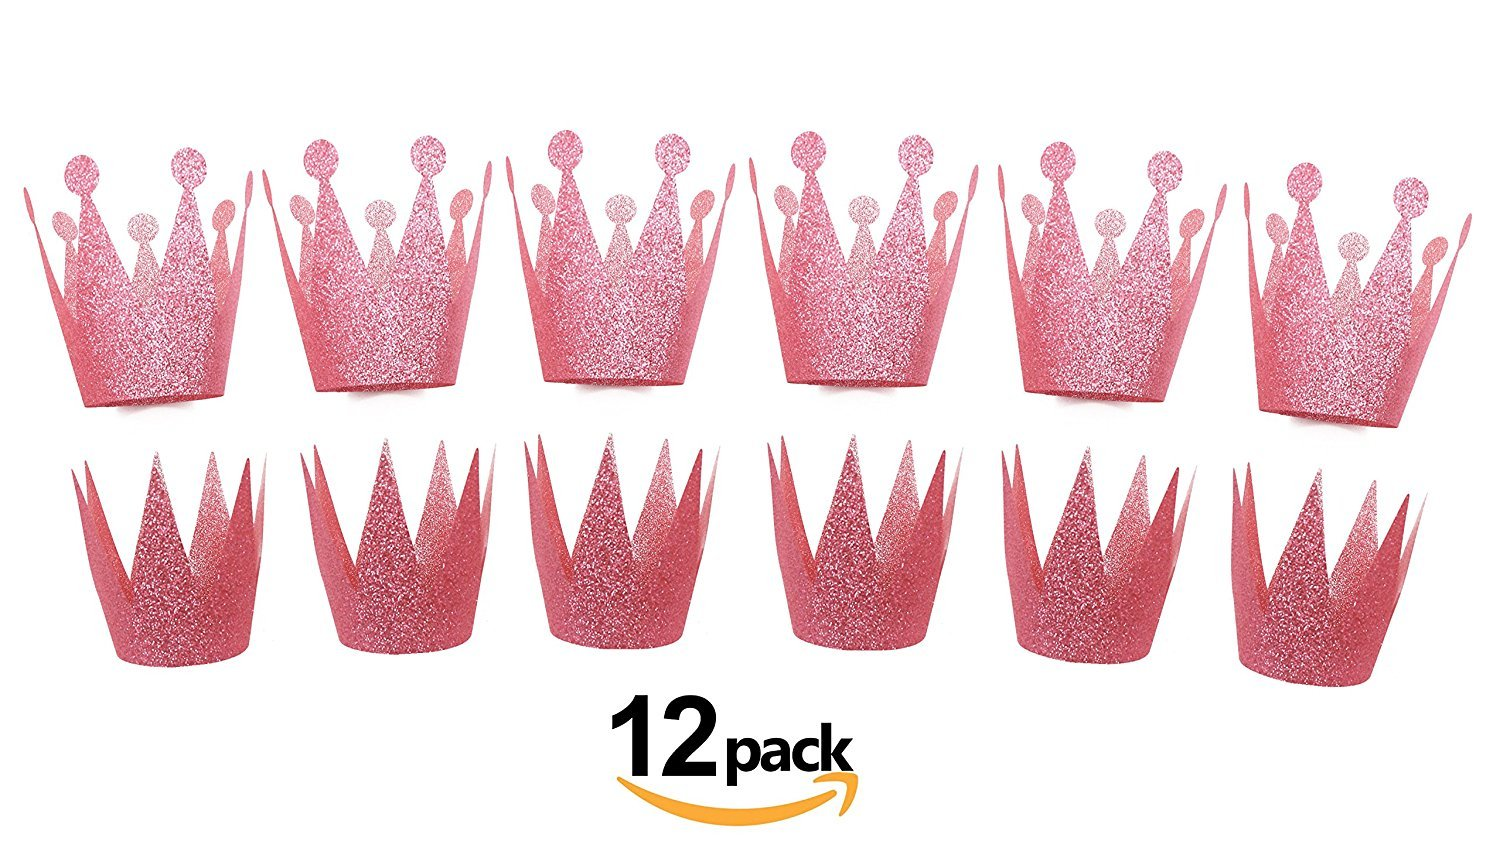 Get Orange Birthday Princess Prince Party Crowns for Kids - Bling Birthday Party Hats- 12ct (Pink)